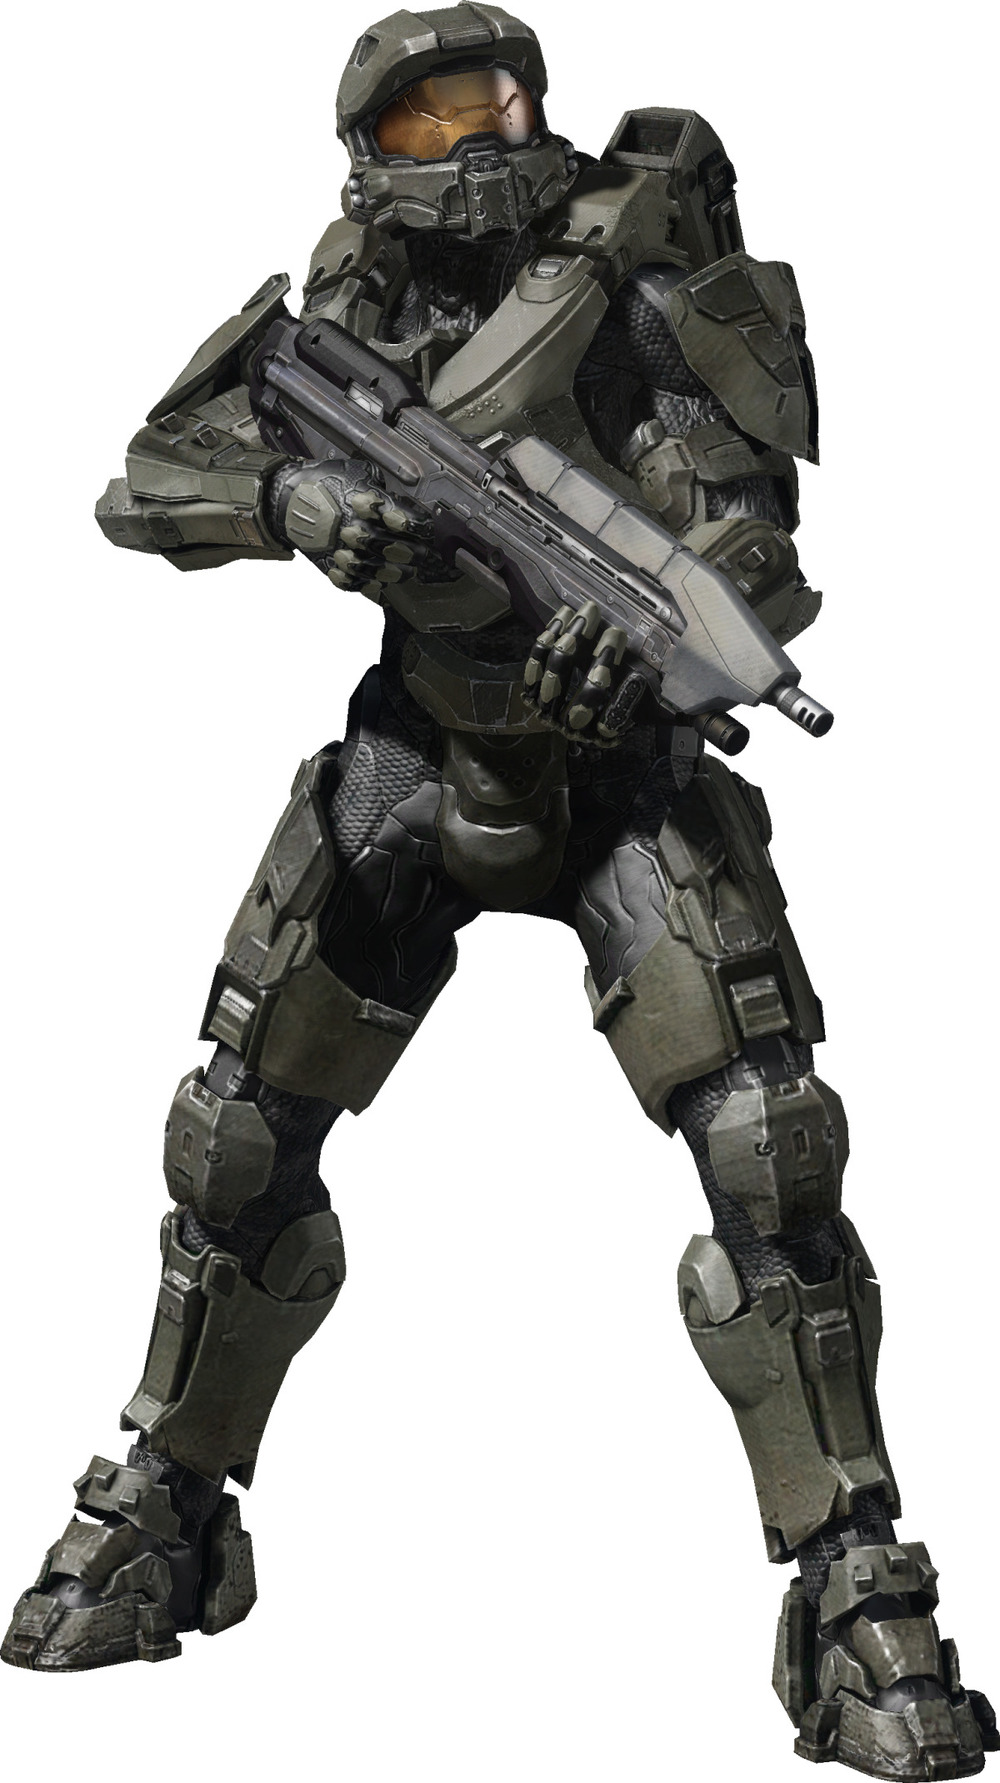 halo4_master-chief-01-highres.jpg